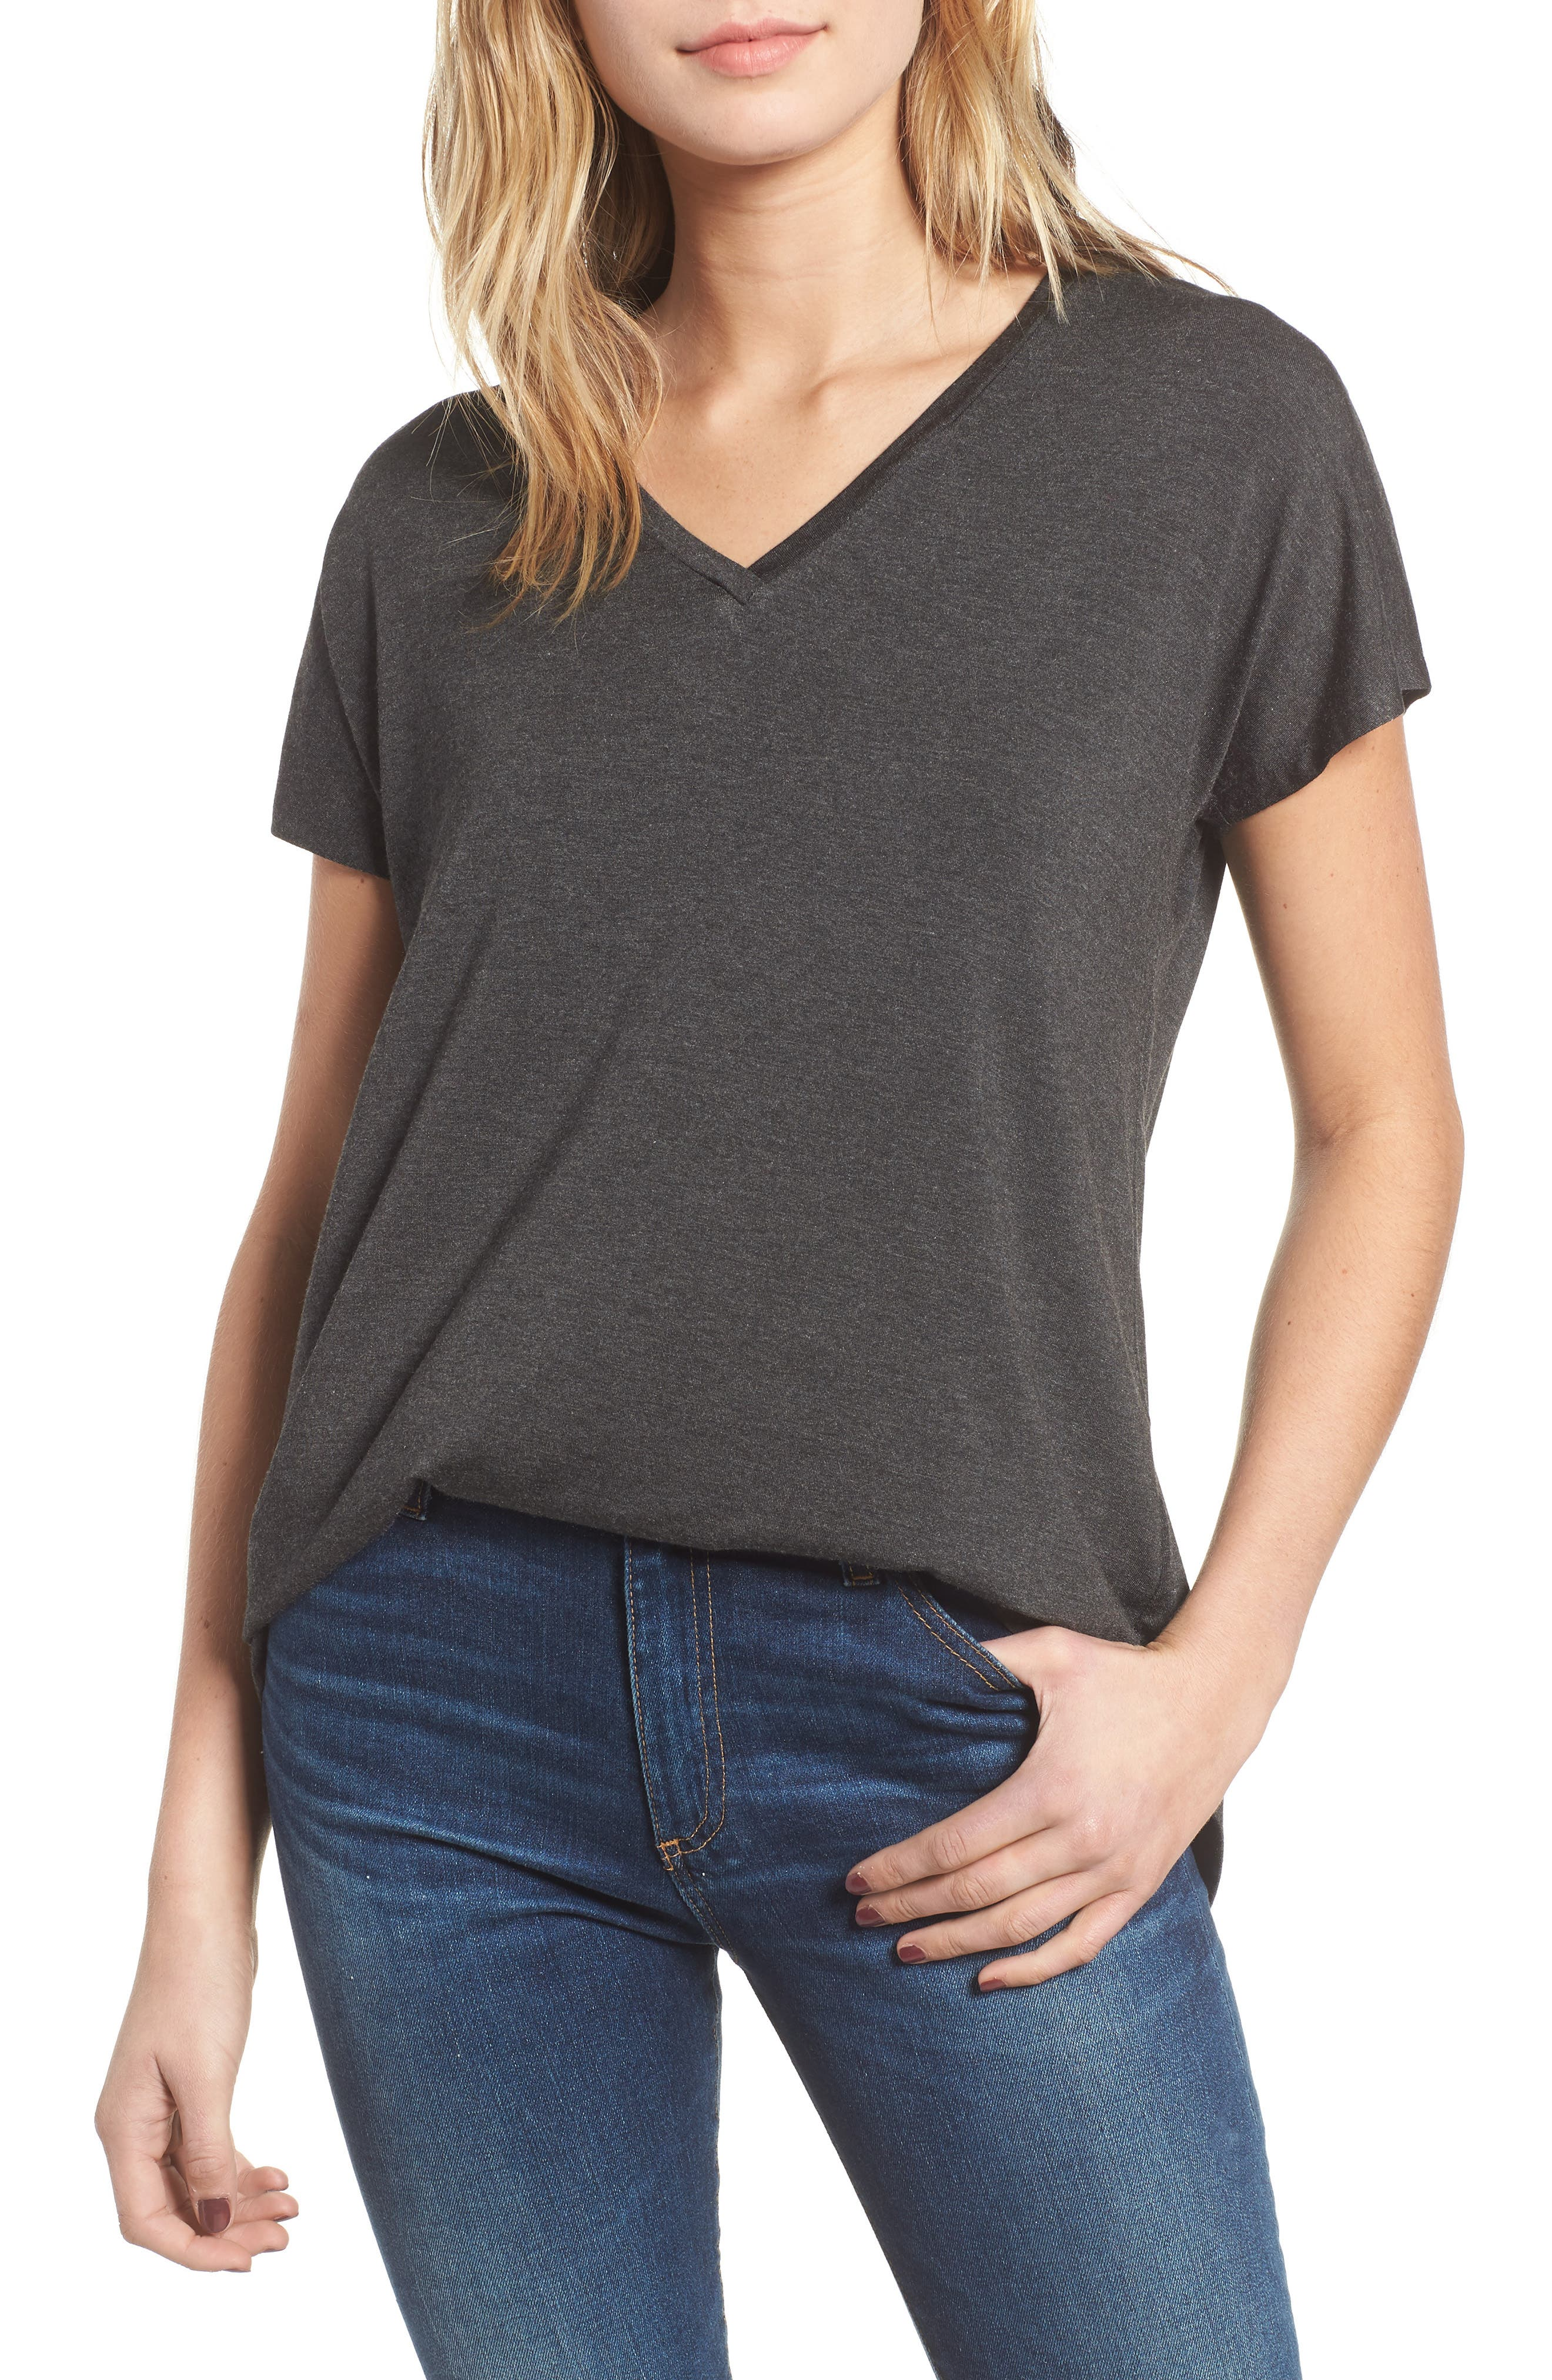 AMOUR VERT Liv Dolman Tee in Anthracite